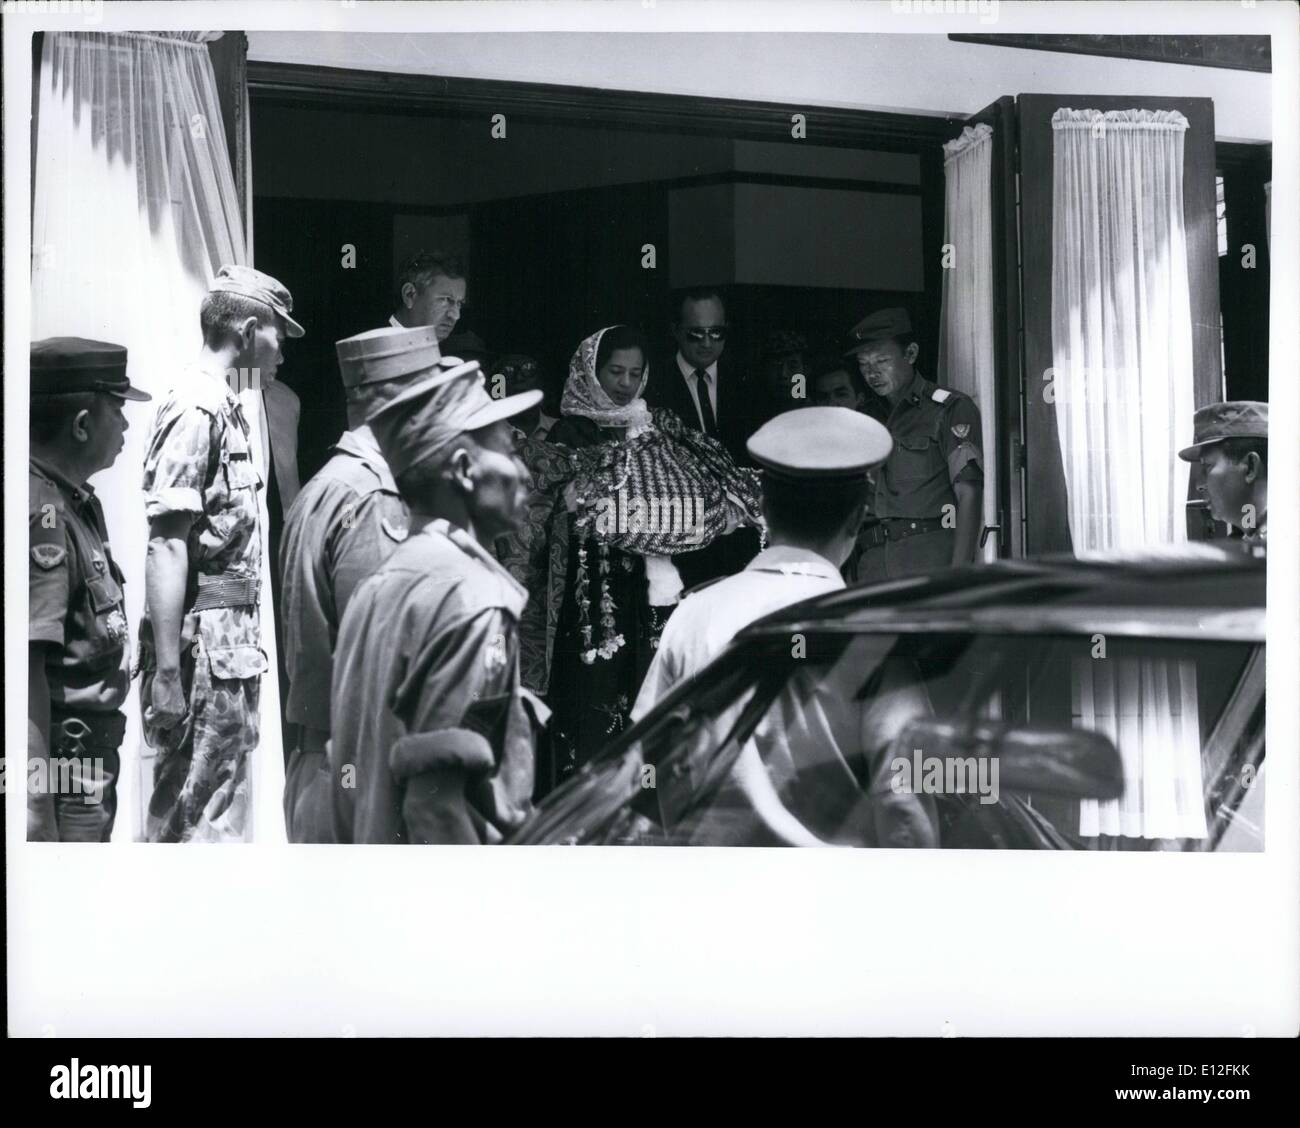 Dec. 26, 2011 - On her way - Mrs Abdul Haris Nasution, wife of Indonesia's Defense Minister, leaves their home in Djakarta in the morning of Oct 7, 1965 carrying the body of her 5-year-old daughter, who was killed during the communist abortive coup of Oct 1. As is Muslim custom, the body is not placed in a casket, but is wrapped in cloth and buried. Mrs Nasution carried the girl on her lap in the car to the cemetery. - Stock Image